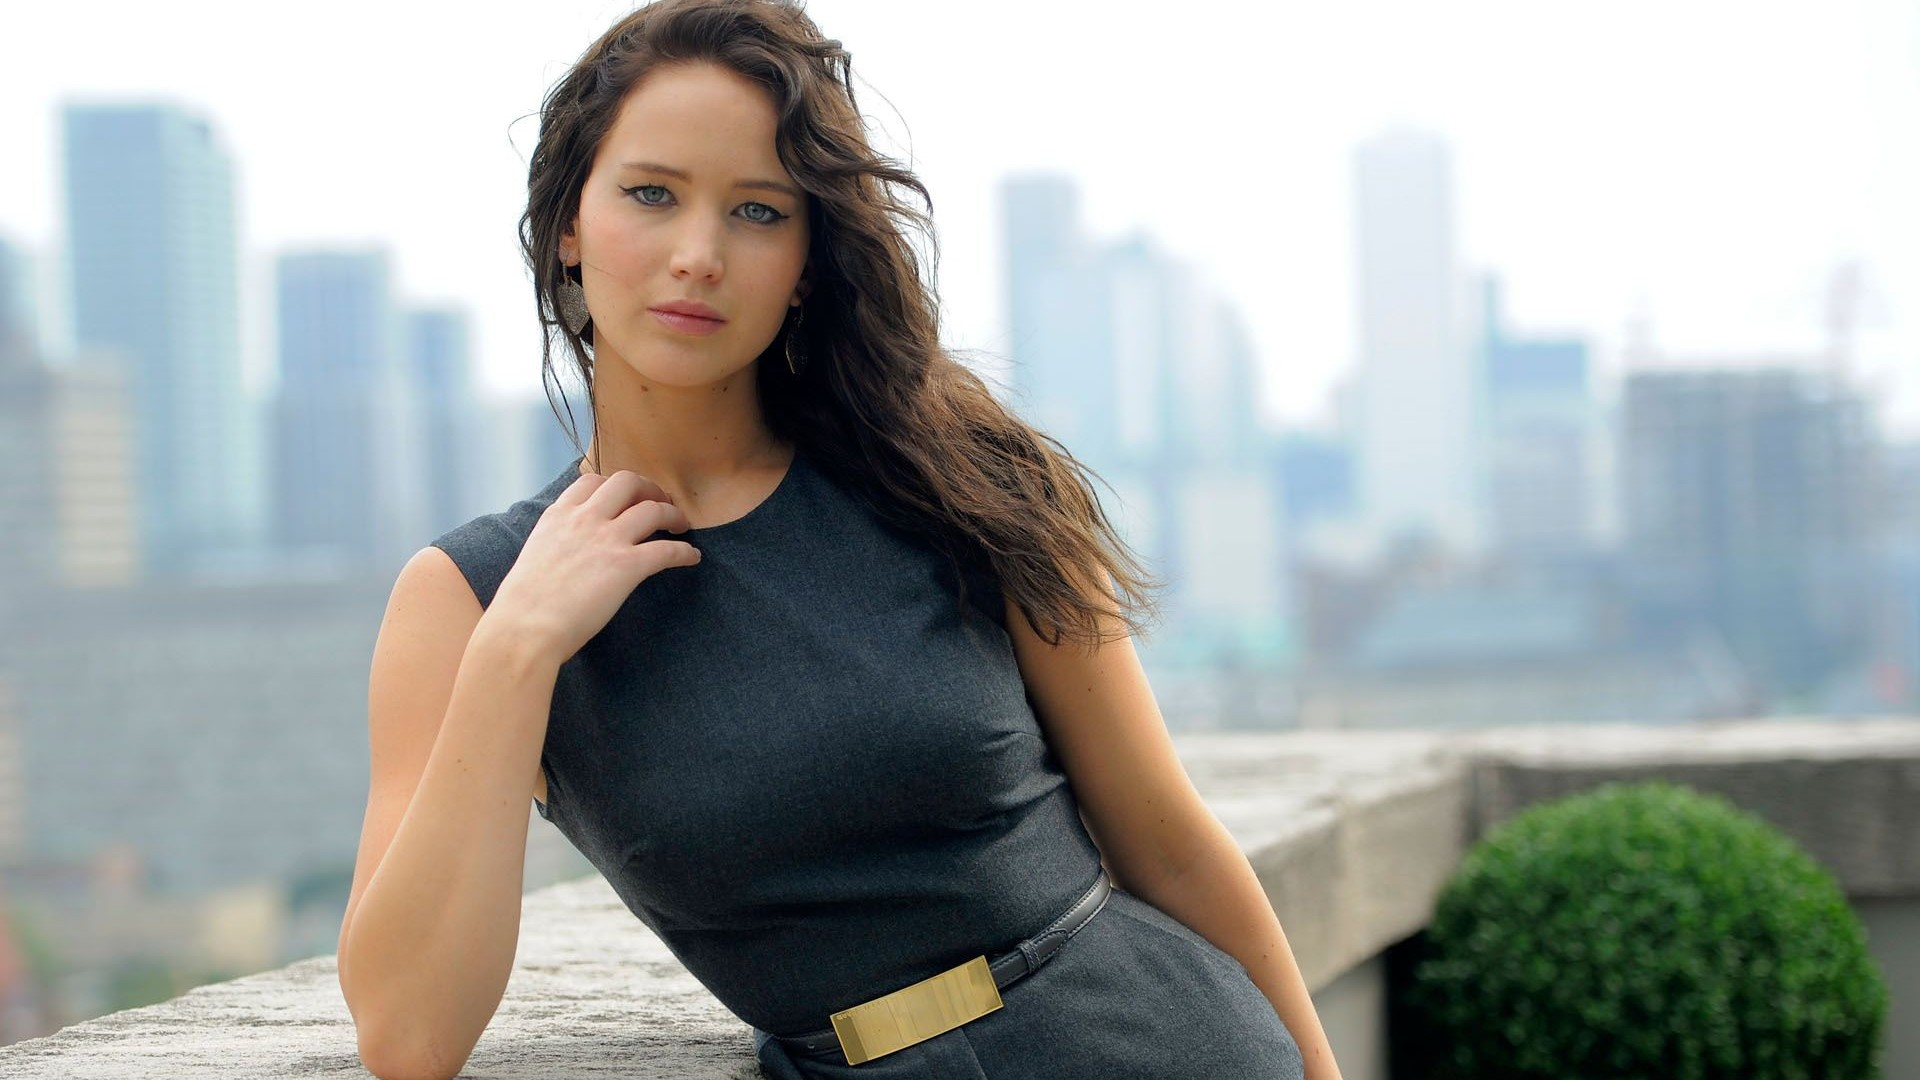 download free charming jennifer lawrence hd images